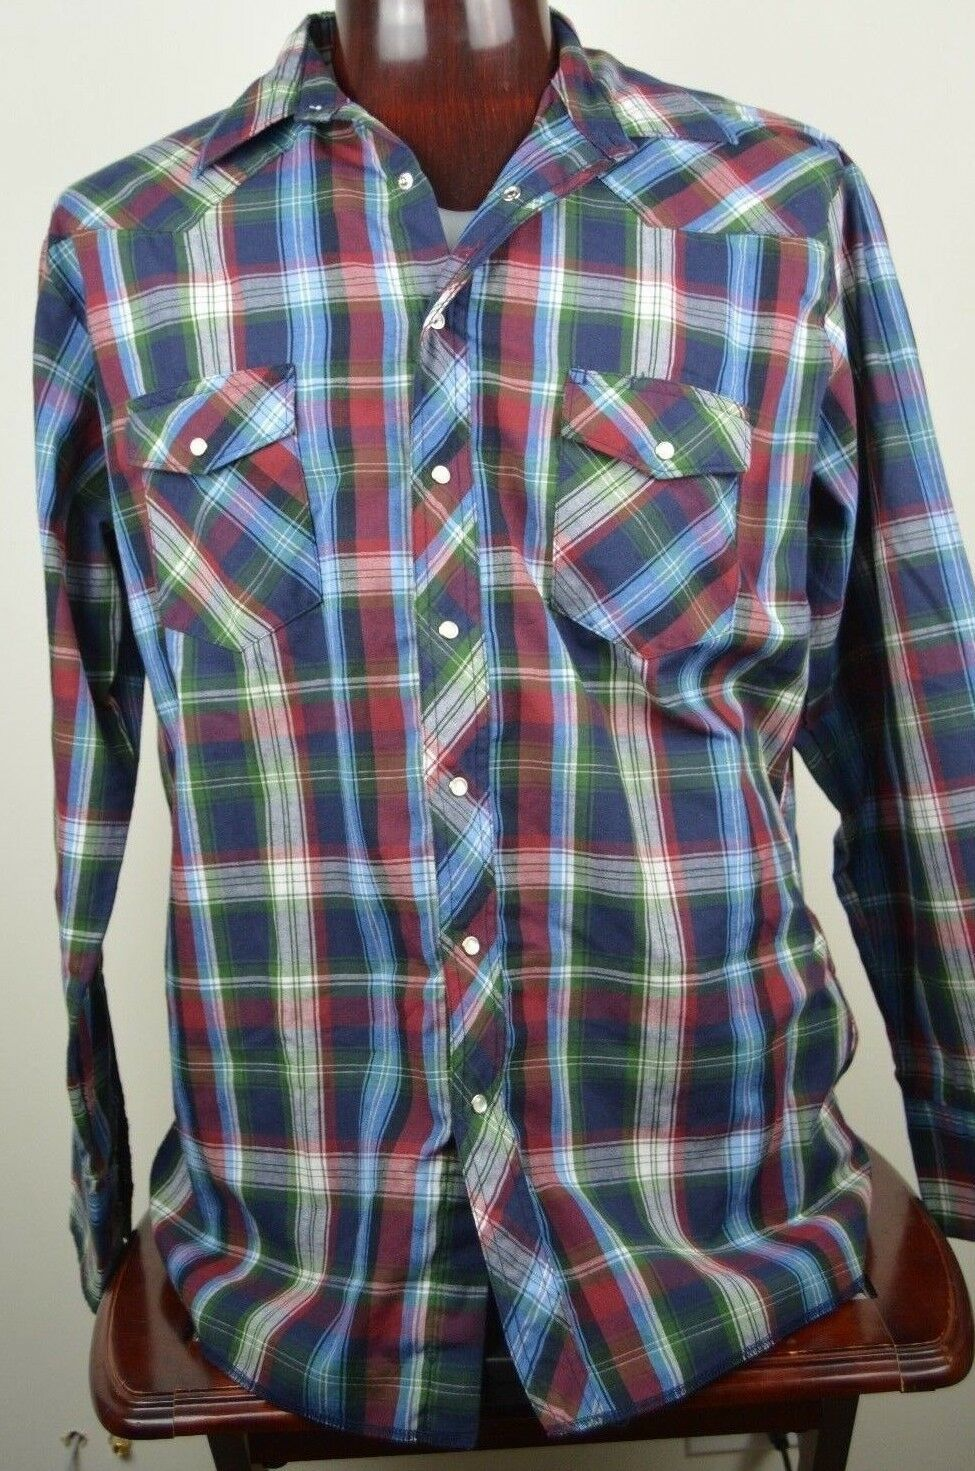 0461f52b 57. 57. Previous. Wrangler Western Shirt XL Mens Button Front plaid pearl  snap buttons flawed